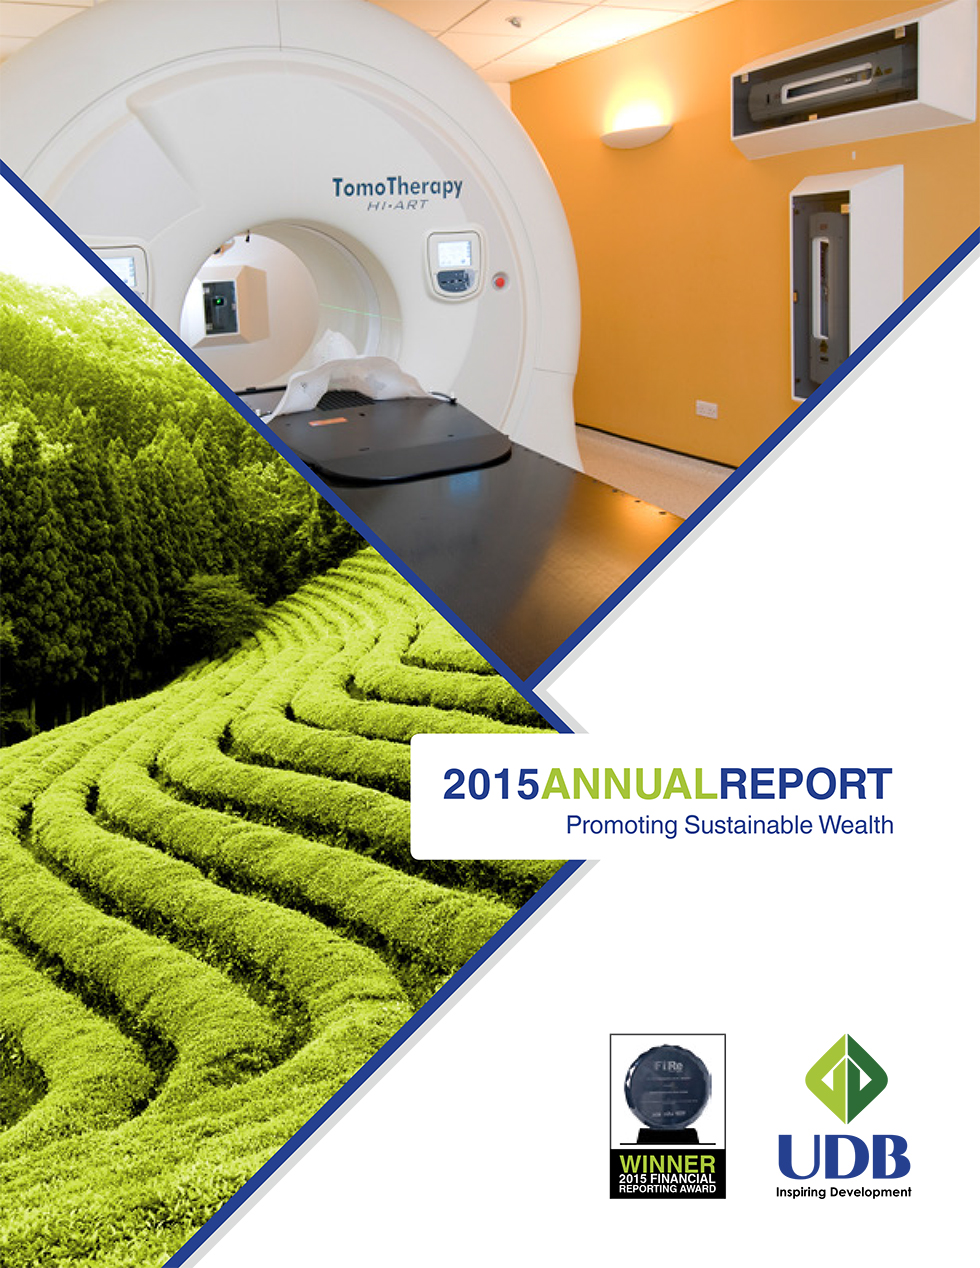 UDB-ANNUAL-REPORT-2015-1